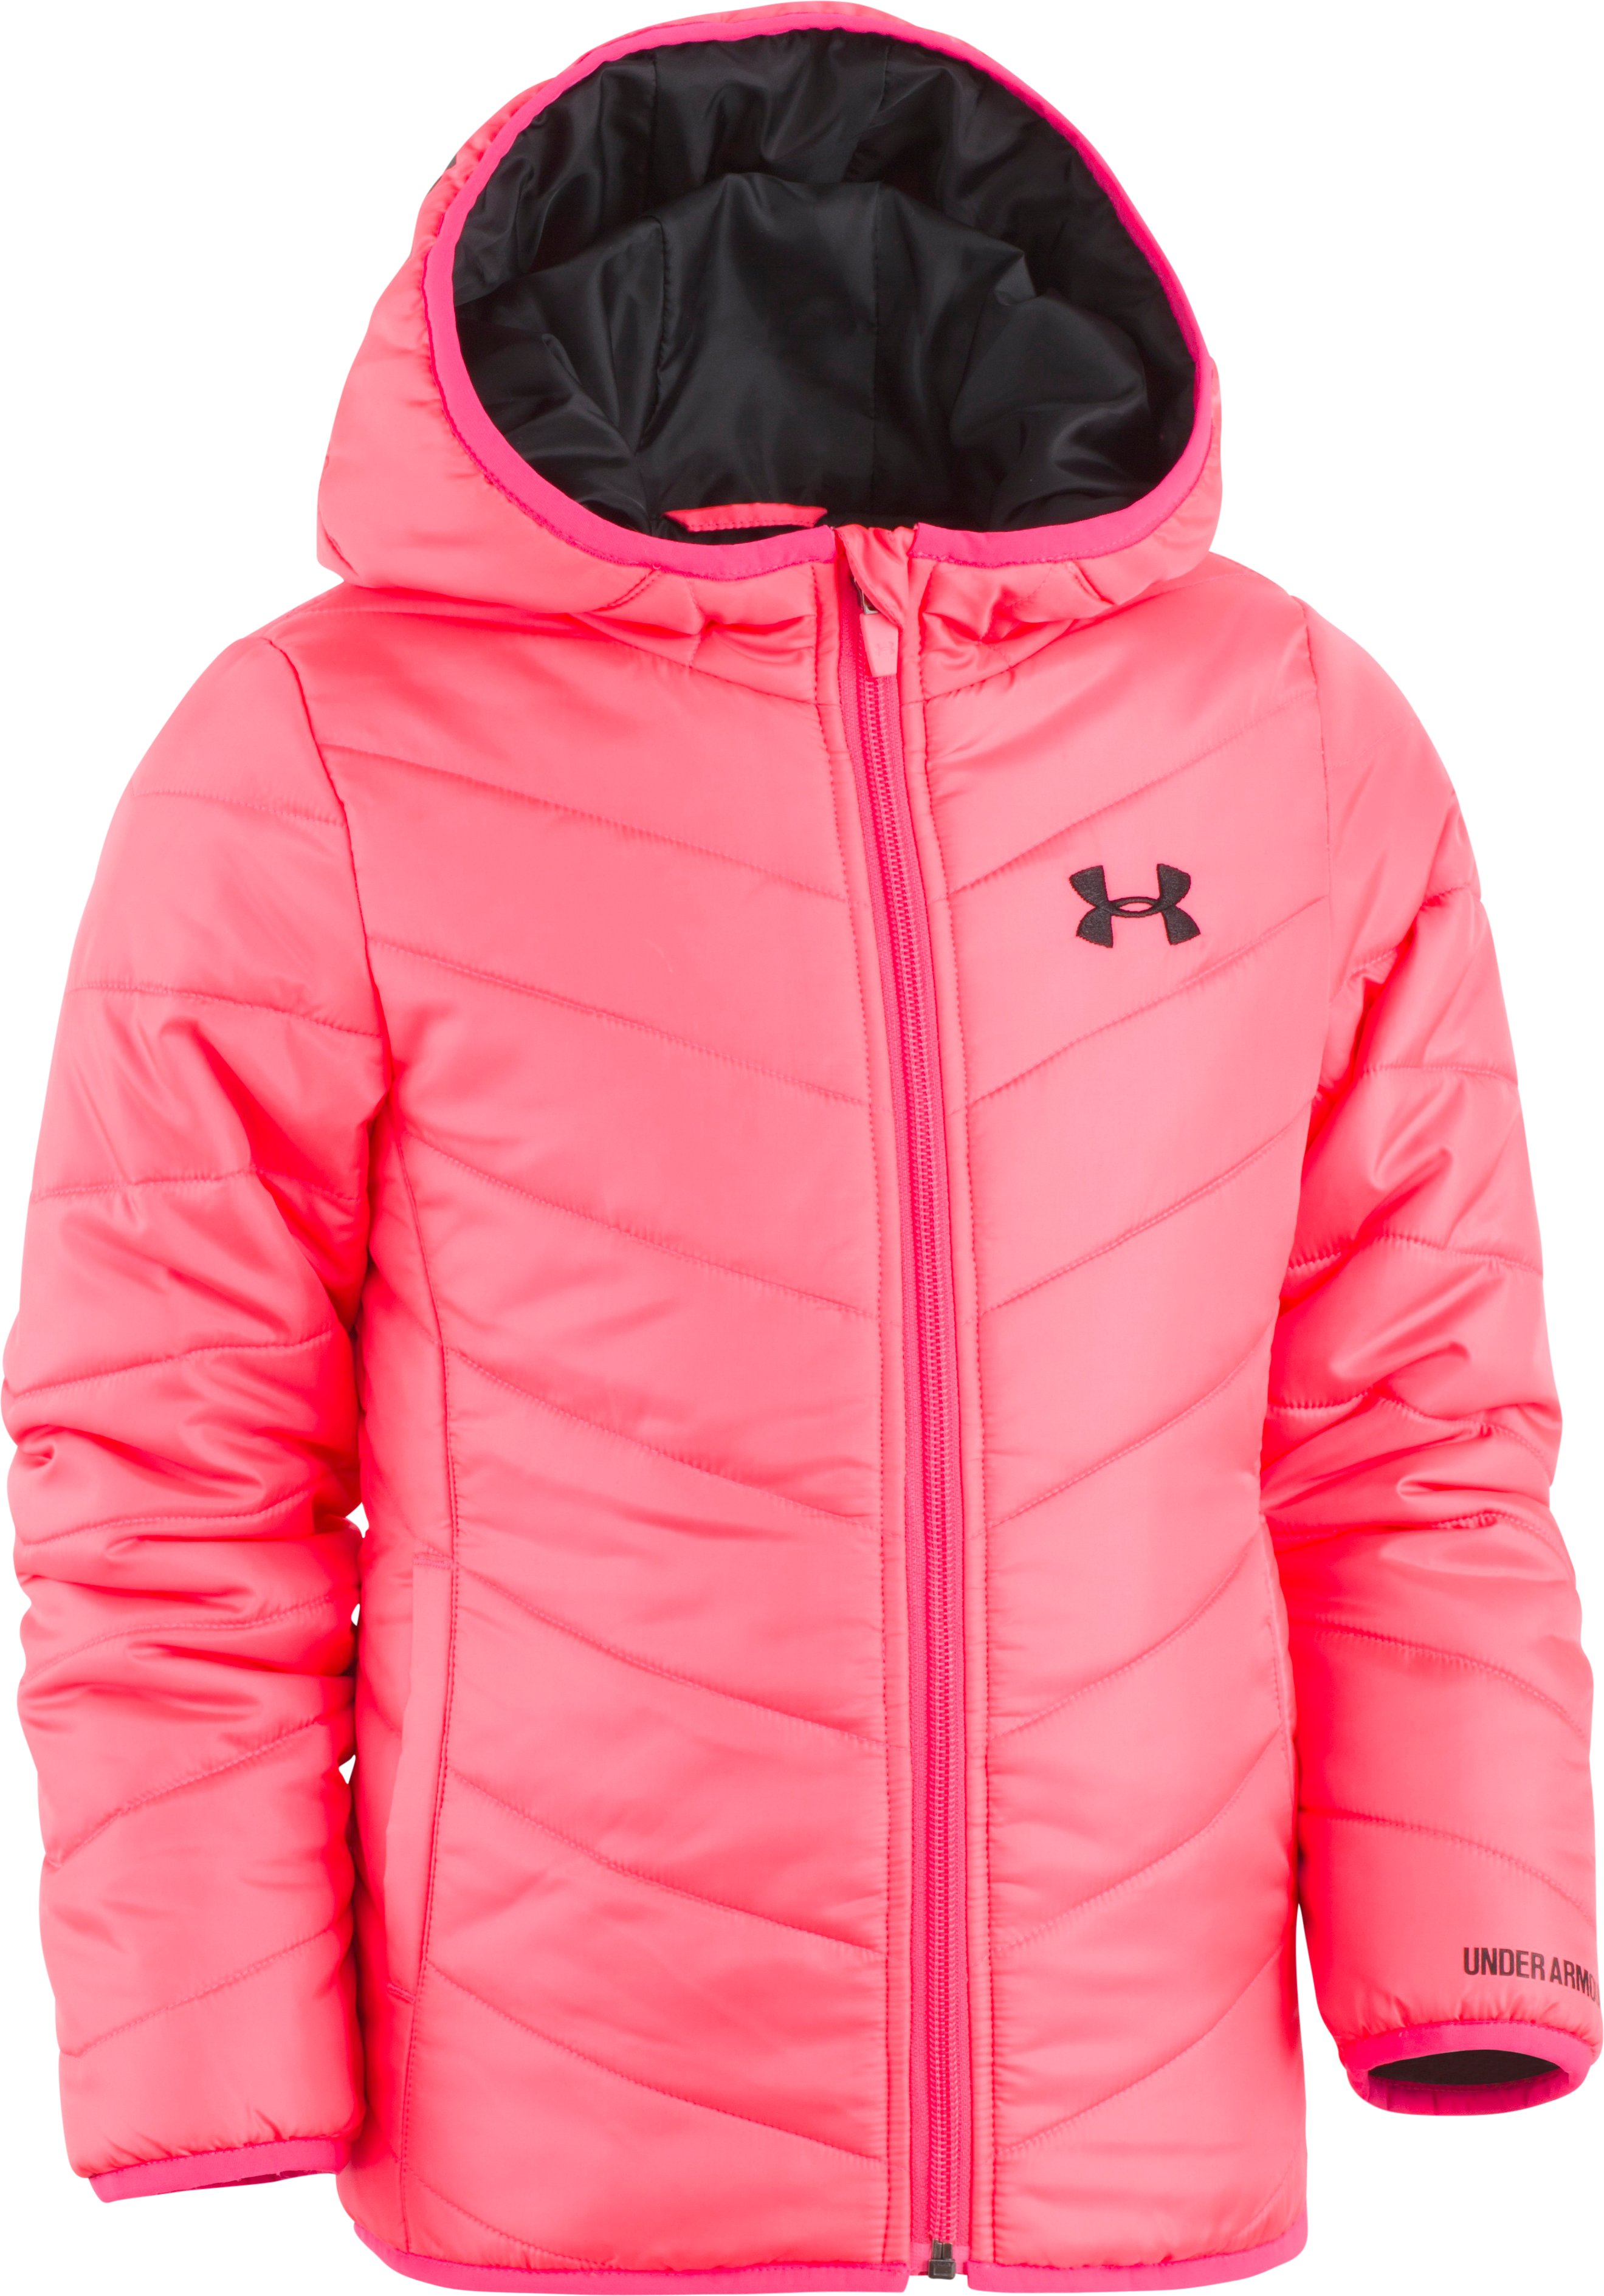 Girls' Infant UA Premier Puffer Jacket, PENTA PINK